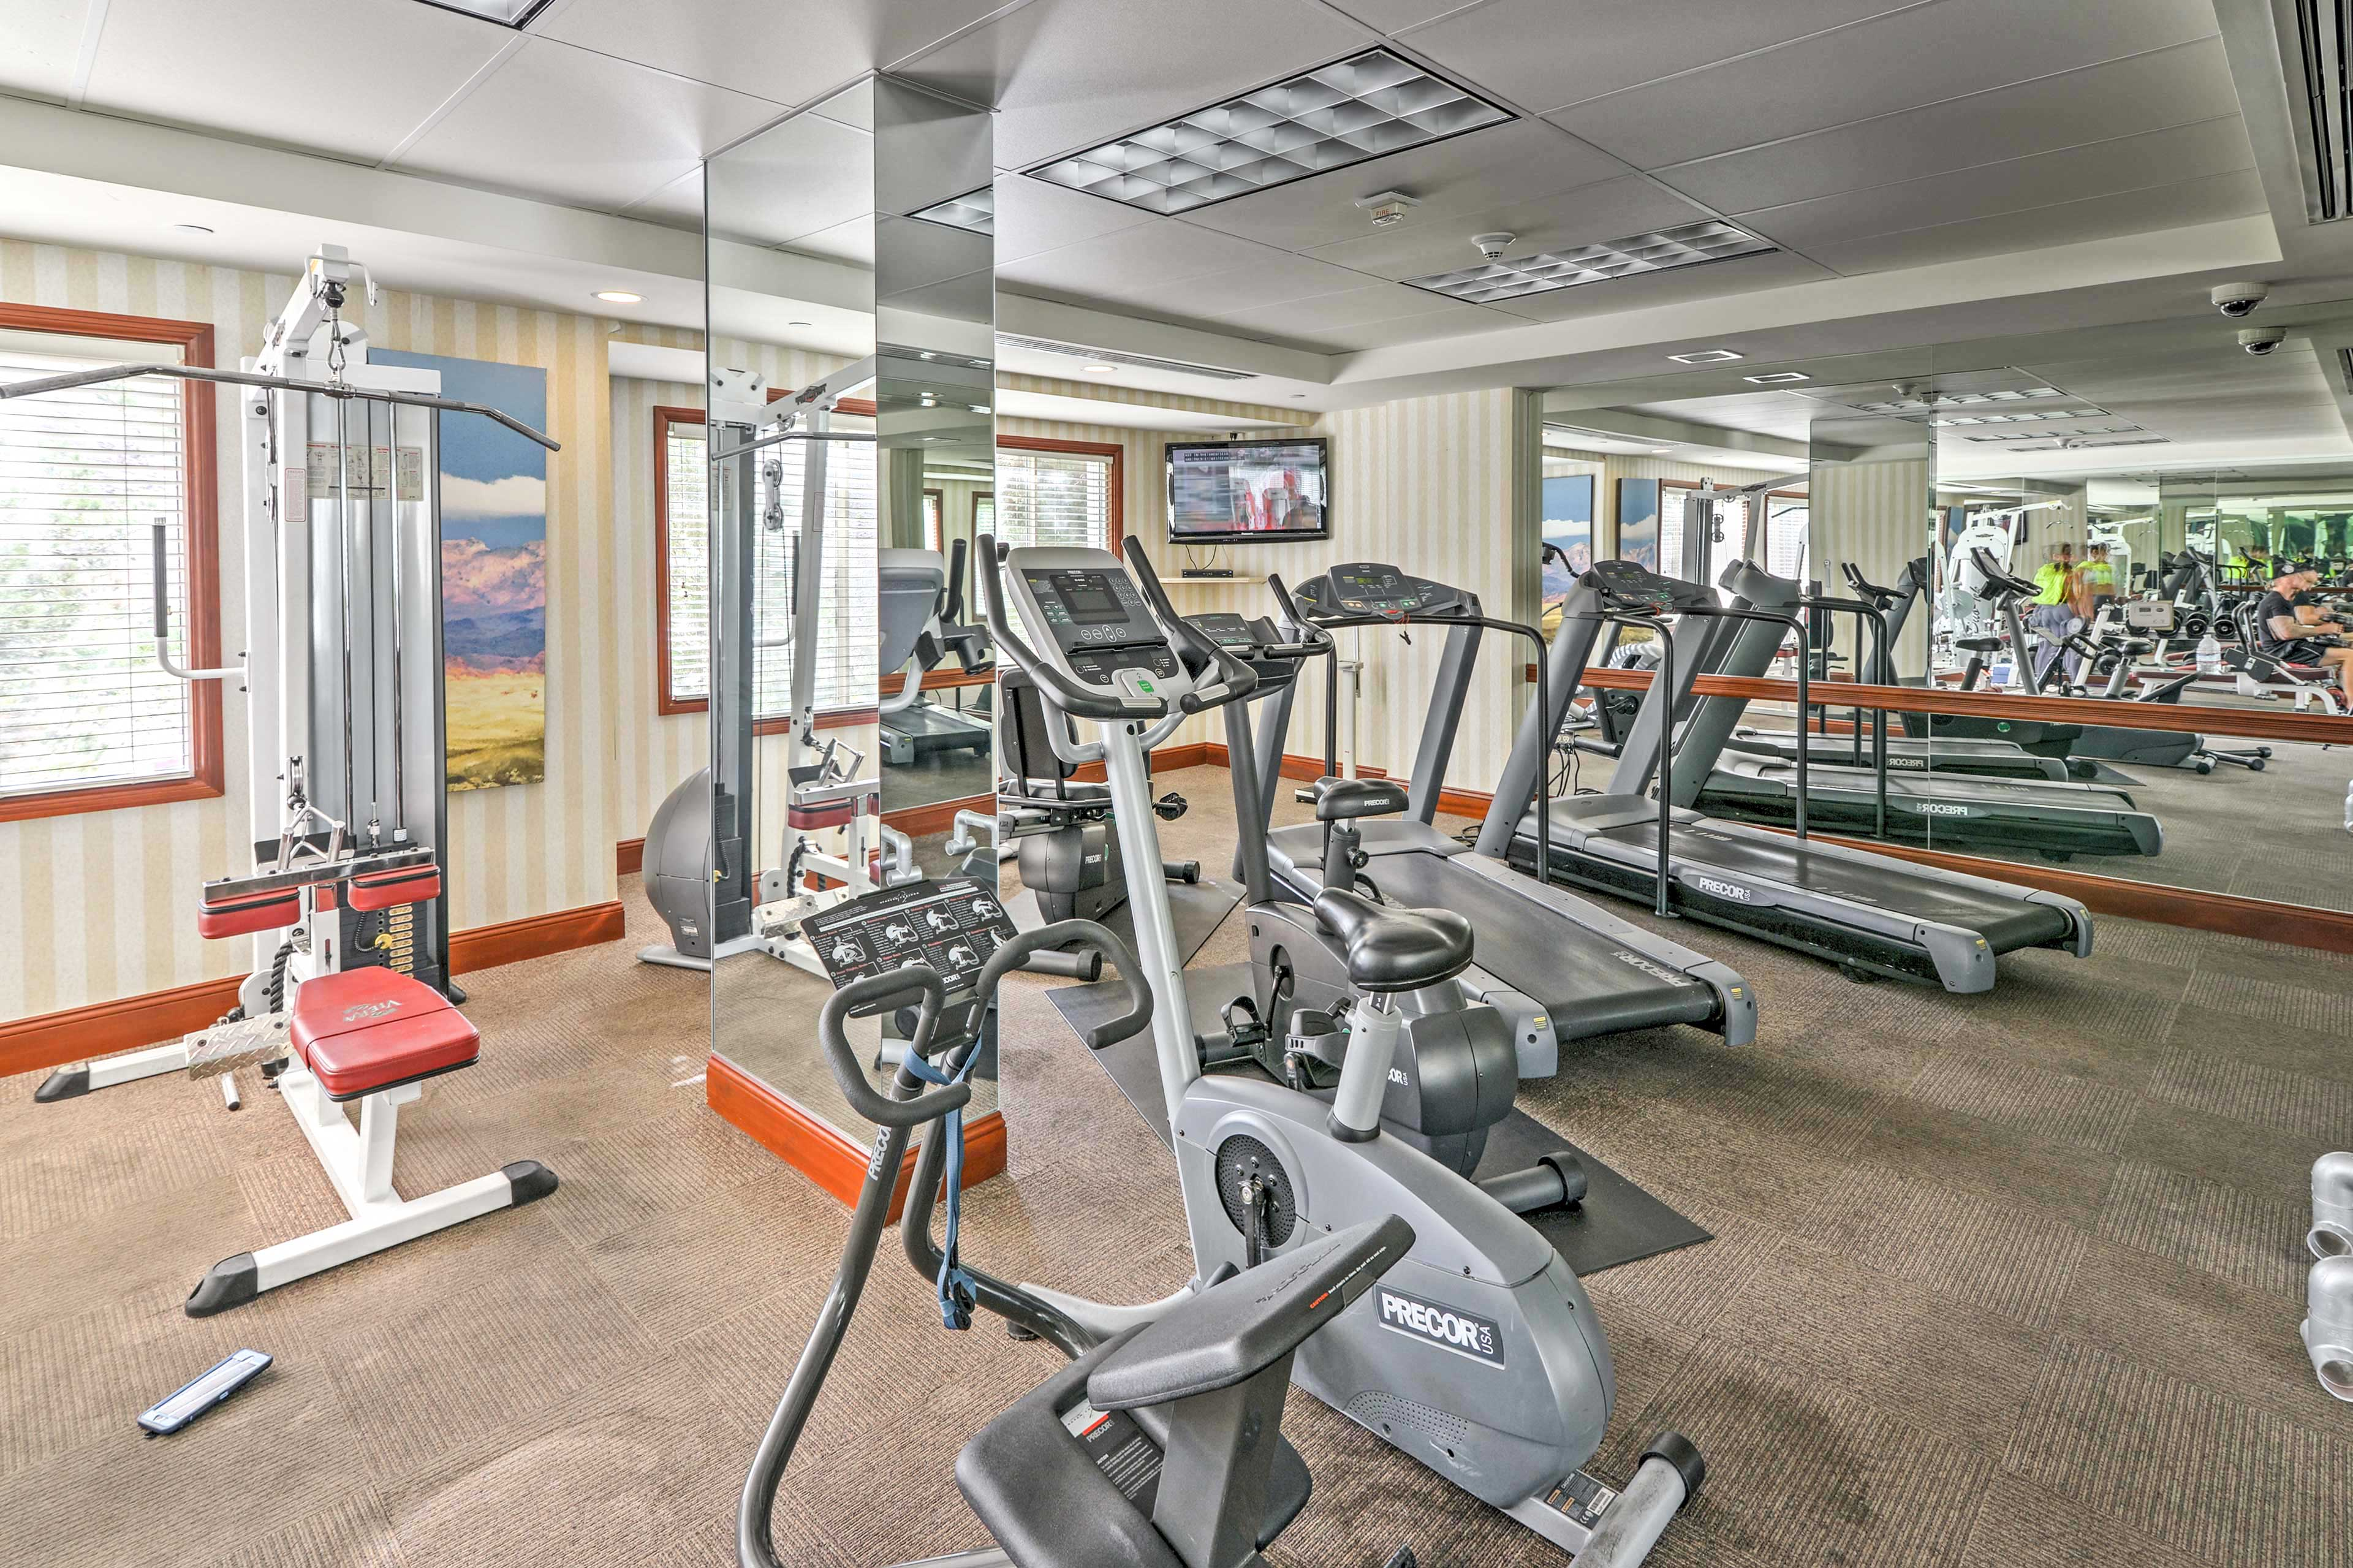 When you want to get active, break a sweat in the resort-style gym.